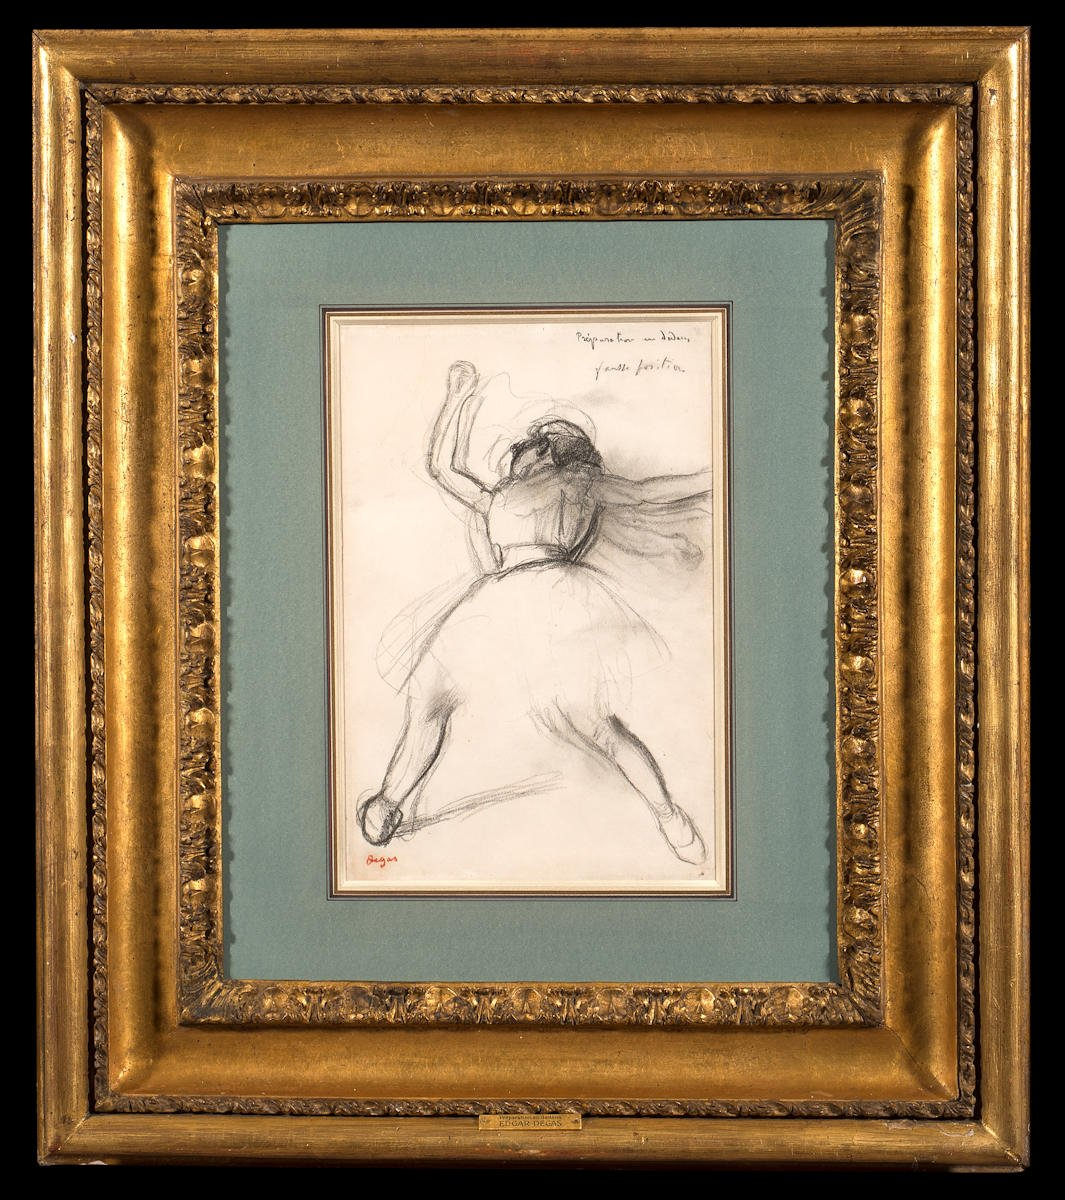 A ballet dancer mid movement with arms and legs outstretched